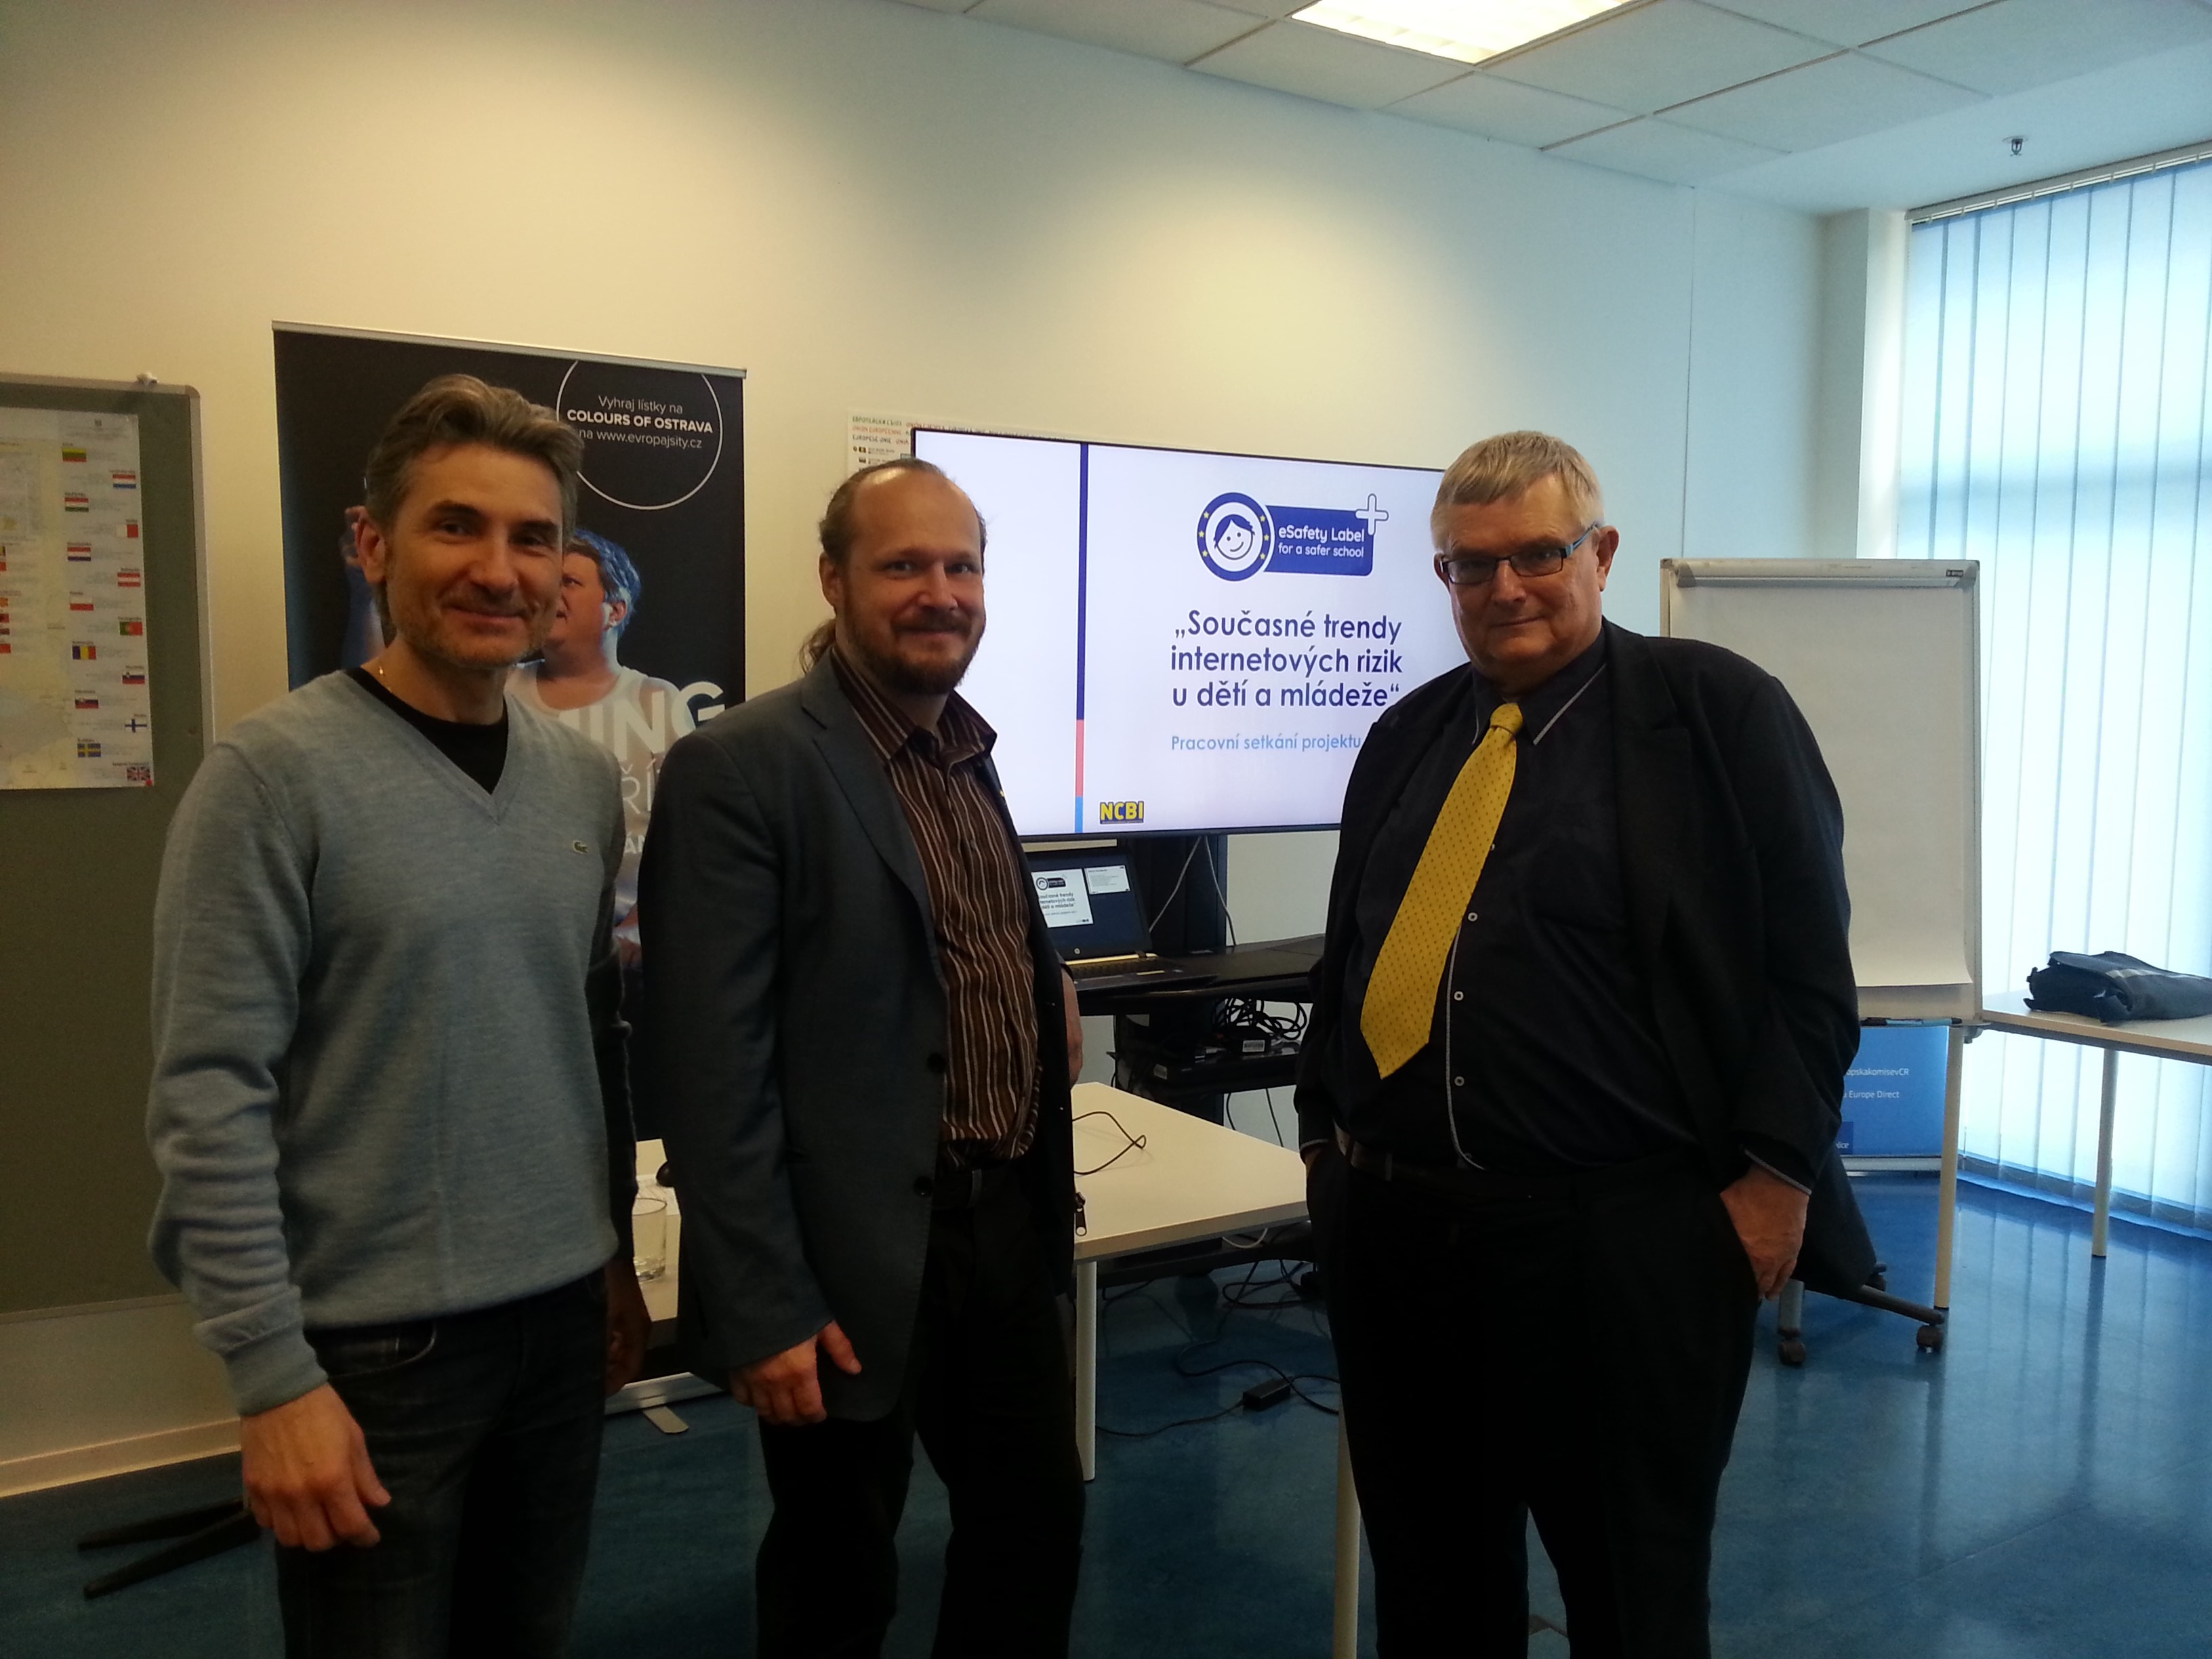 Jiri Palyza (NCBI), Marek Hencl (AARTKOM) and Milan Hausner (eSafety Label+ Champion) at the eSafety Label+ multiplier event